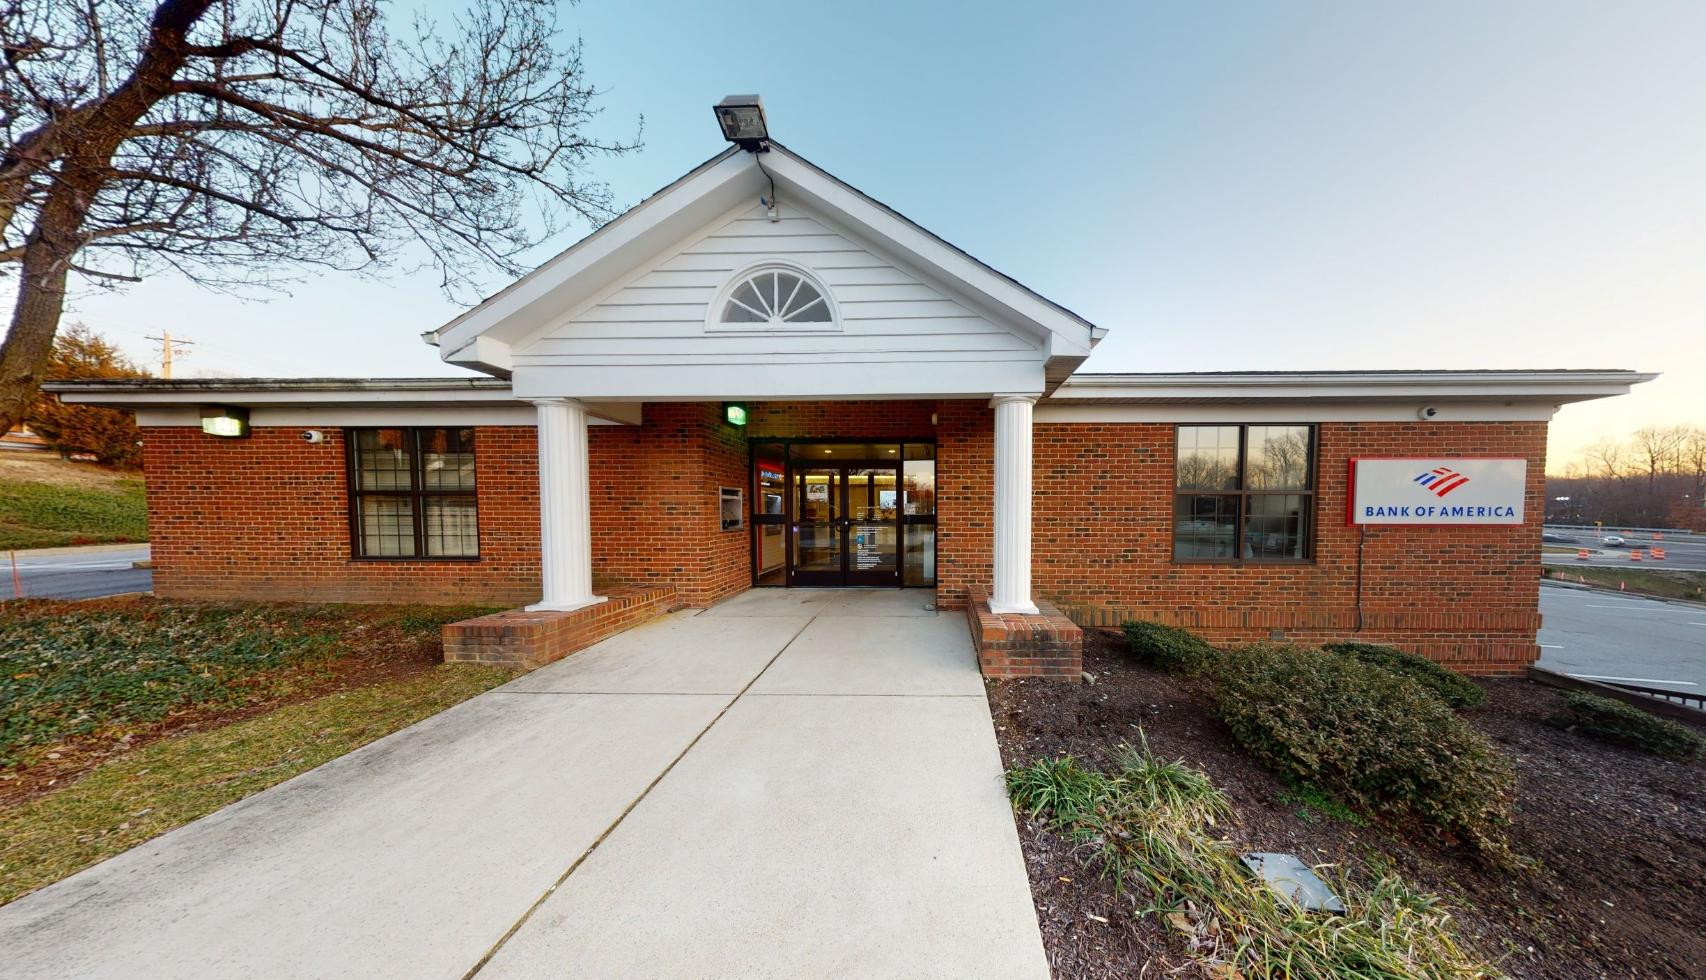 Bank of America financial center with drive-thru ATM | 30 Main St, Prince Frederick, MD 20678